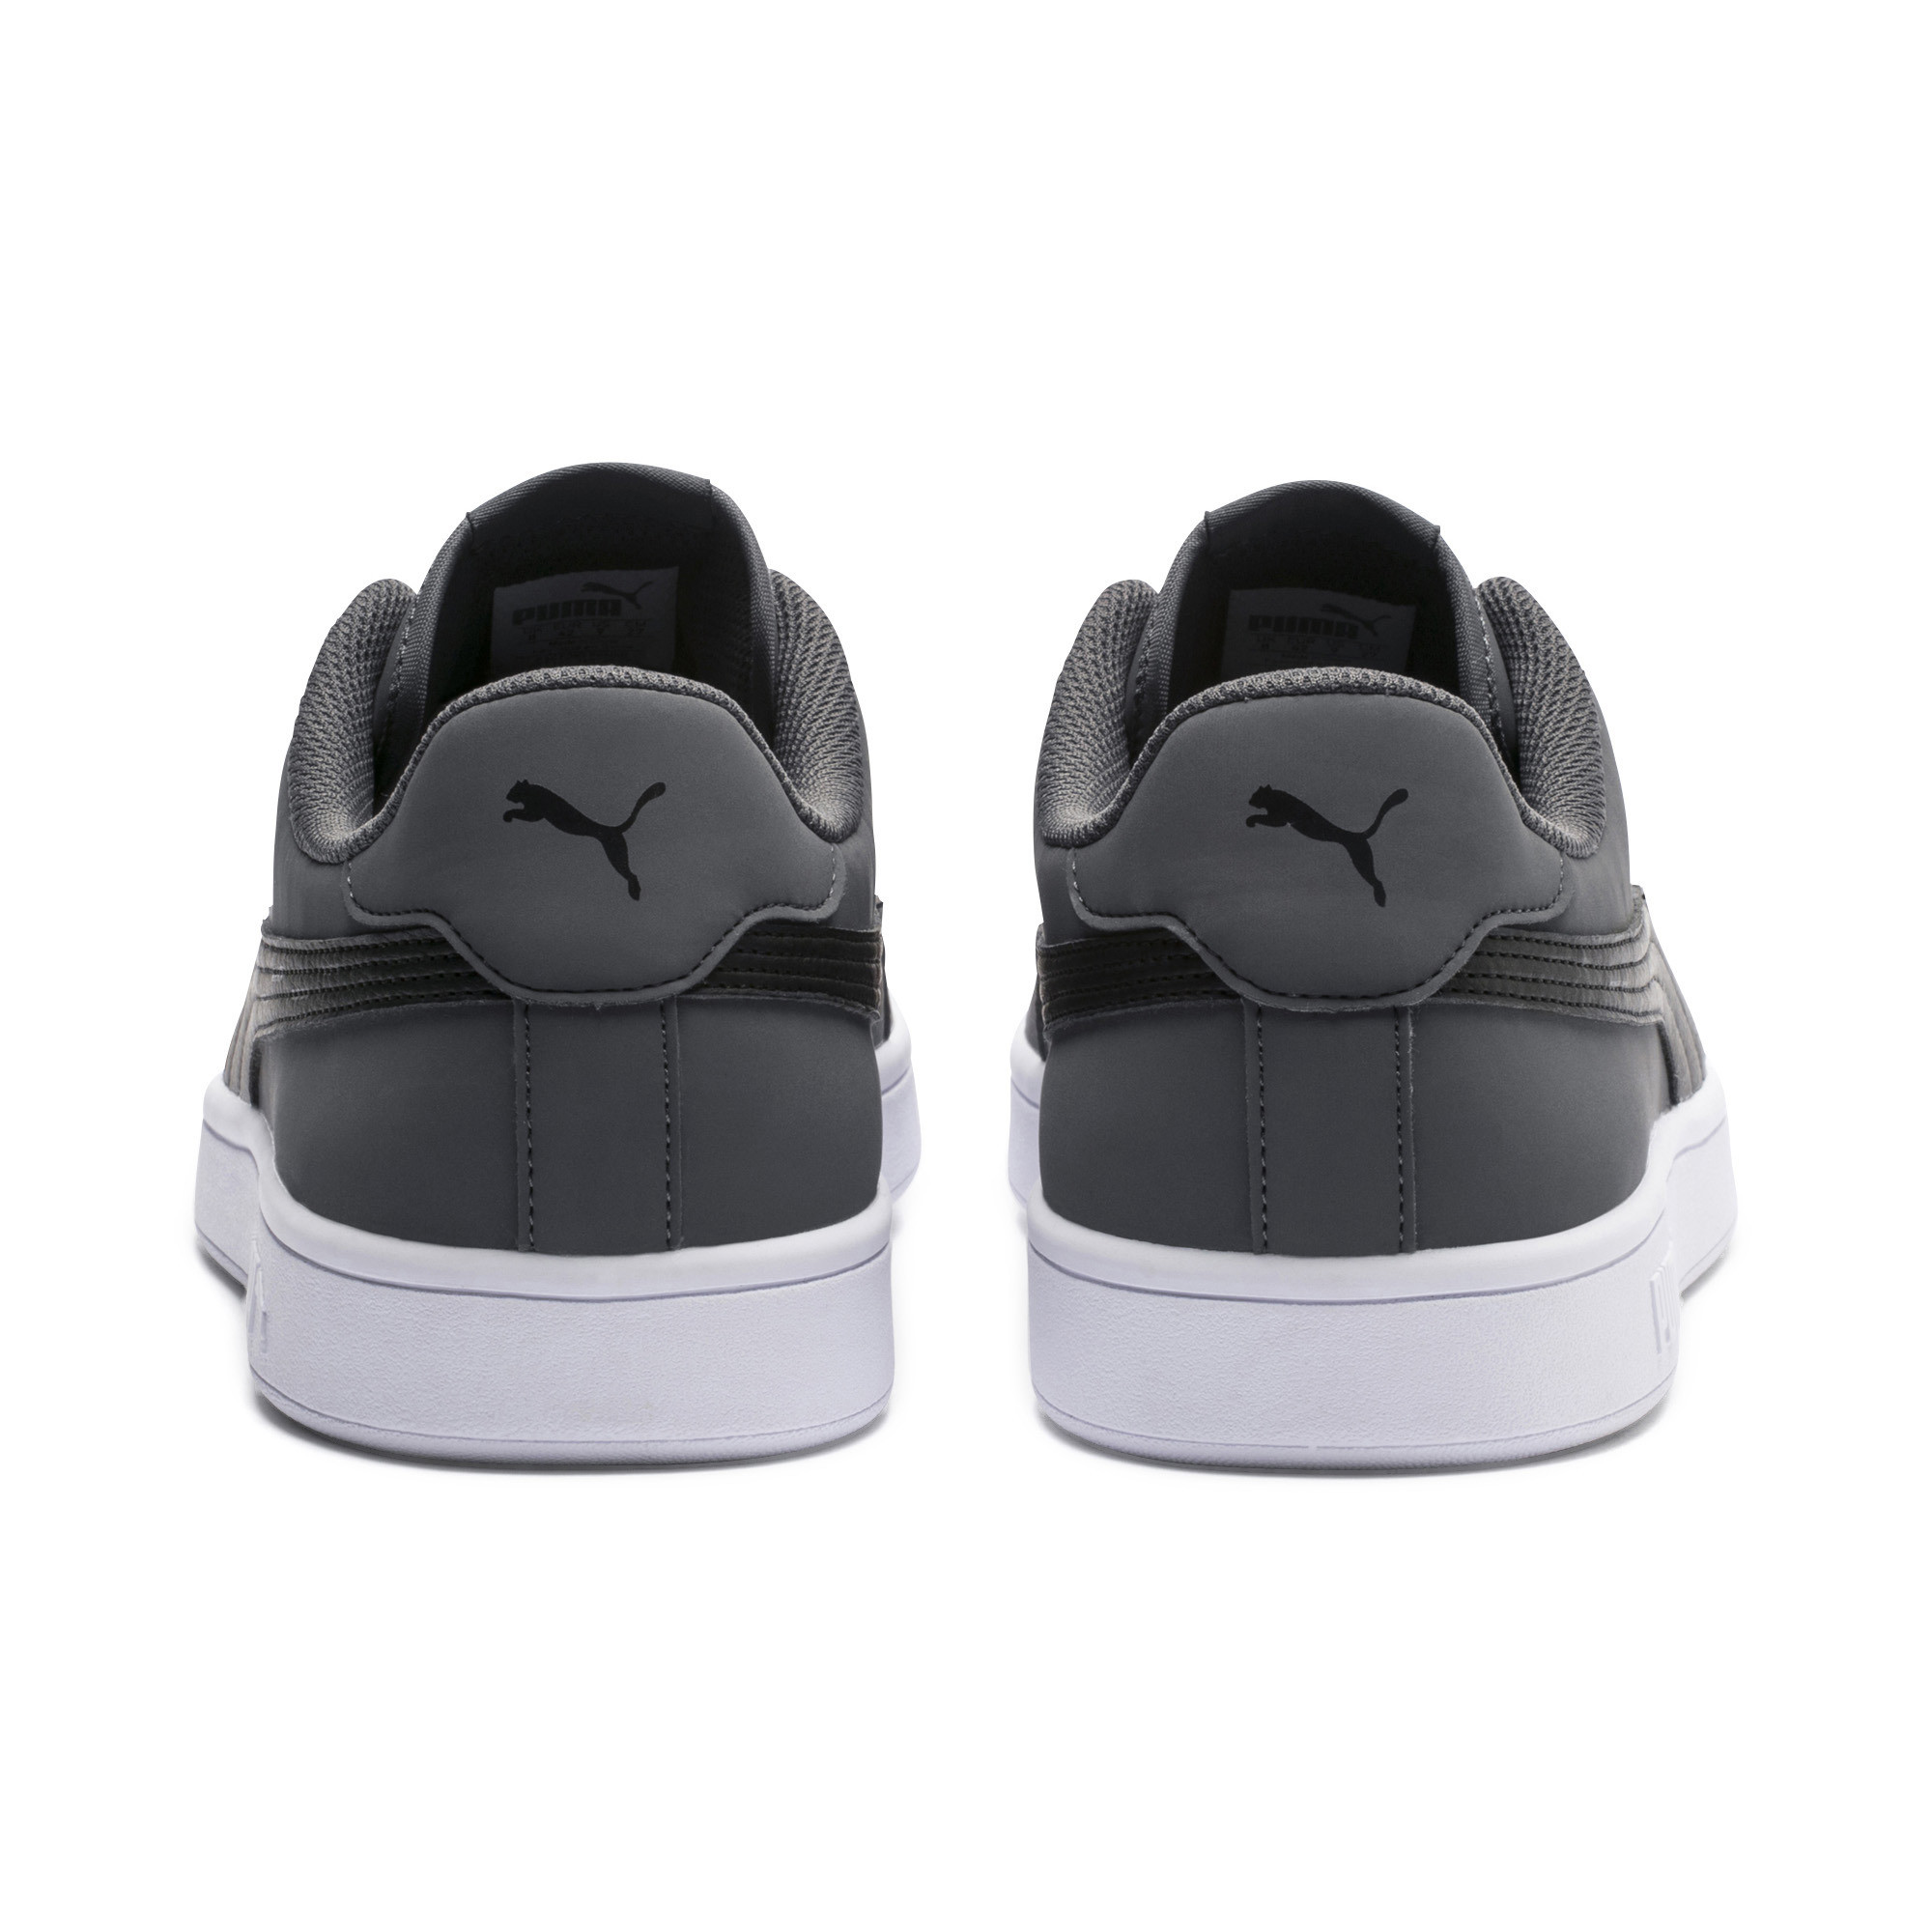 PUMA-PUMA-Smash-v2-Nubuck-Men-039-s-Sneakers-Men-Shoe-Basics thumbnail 9